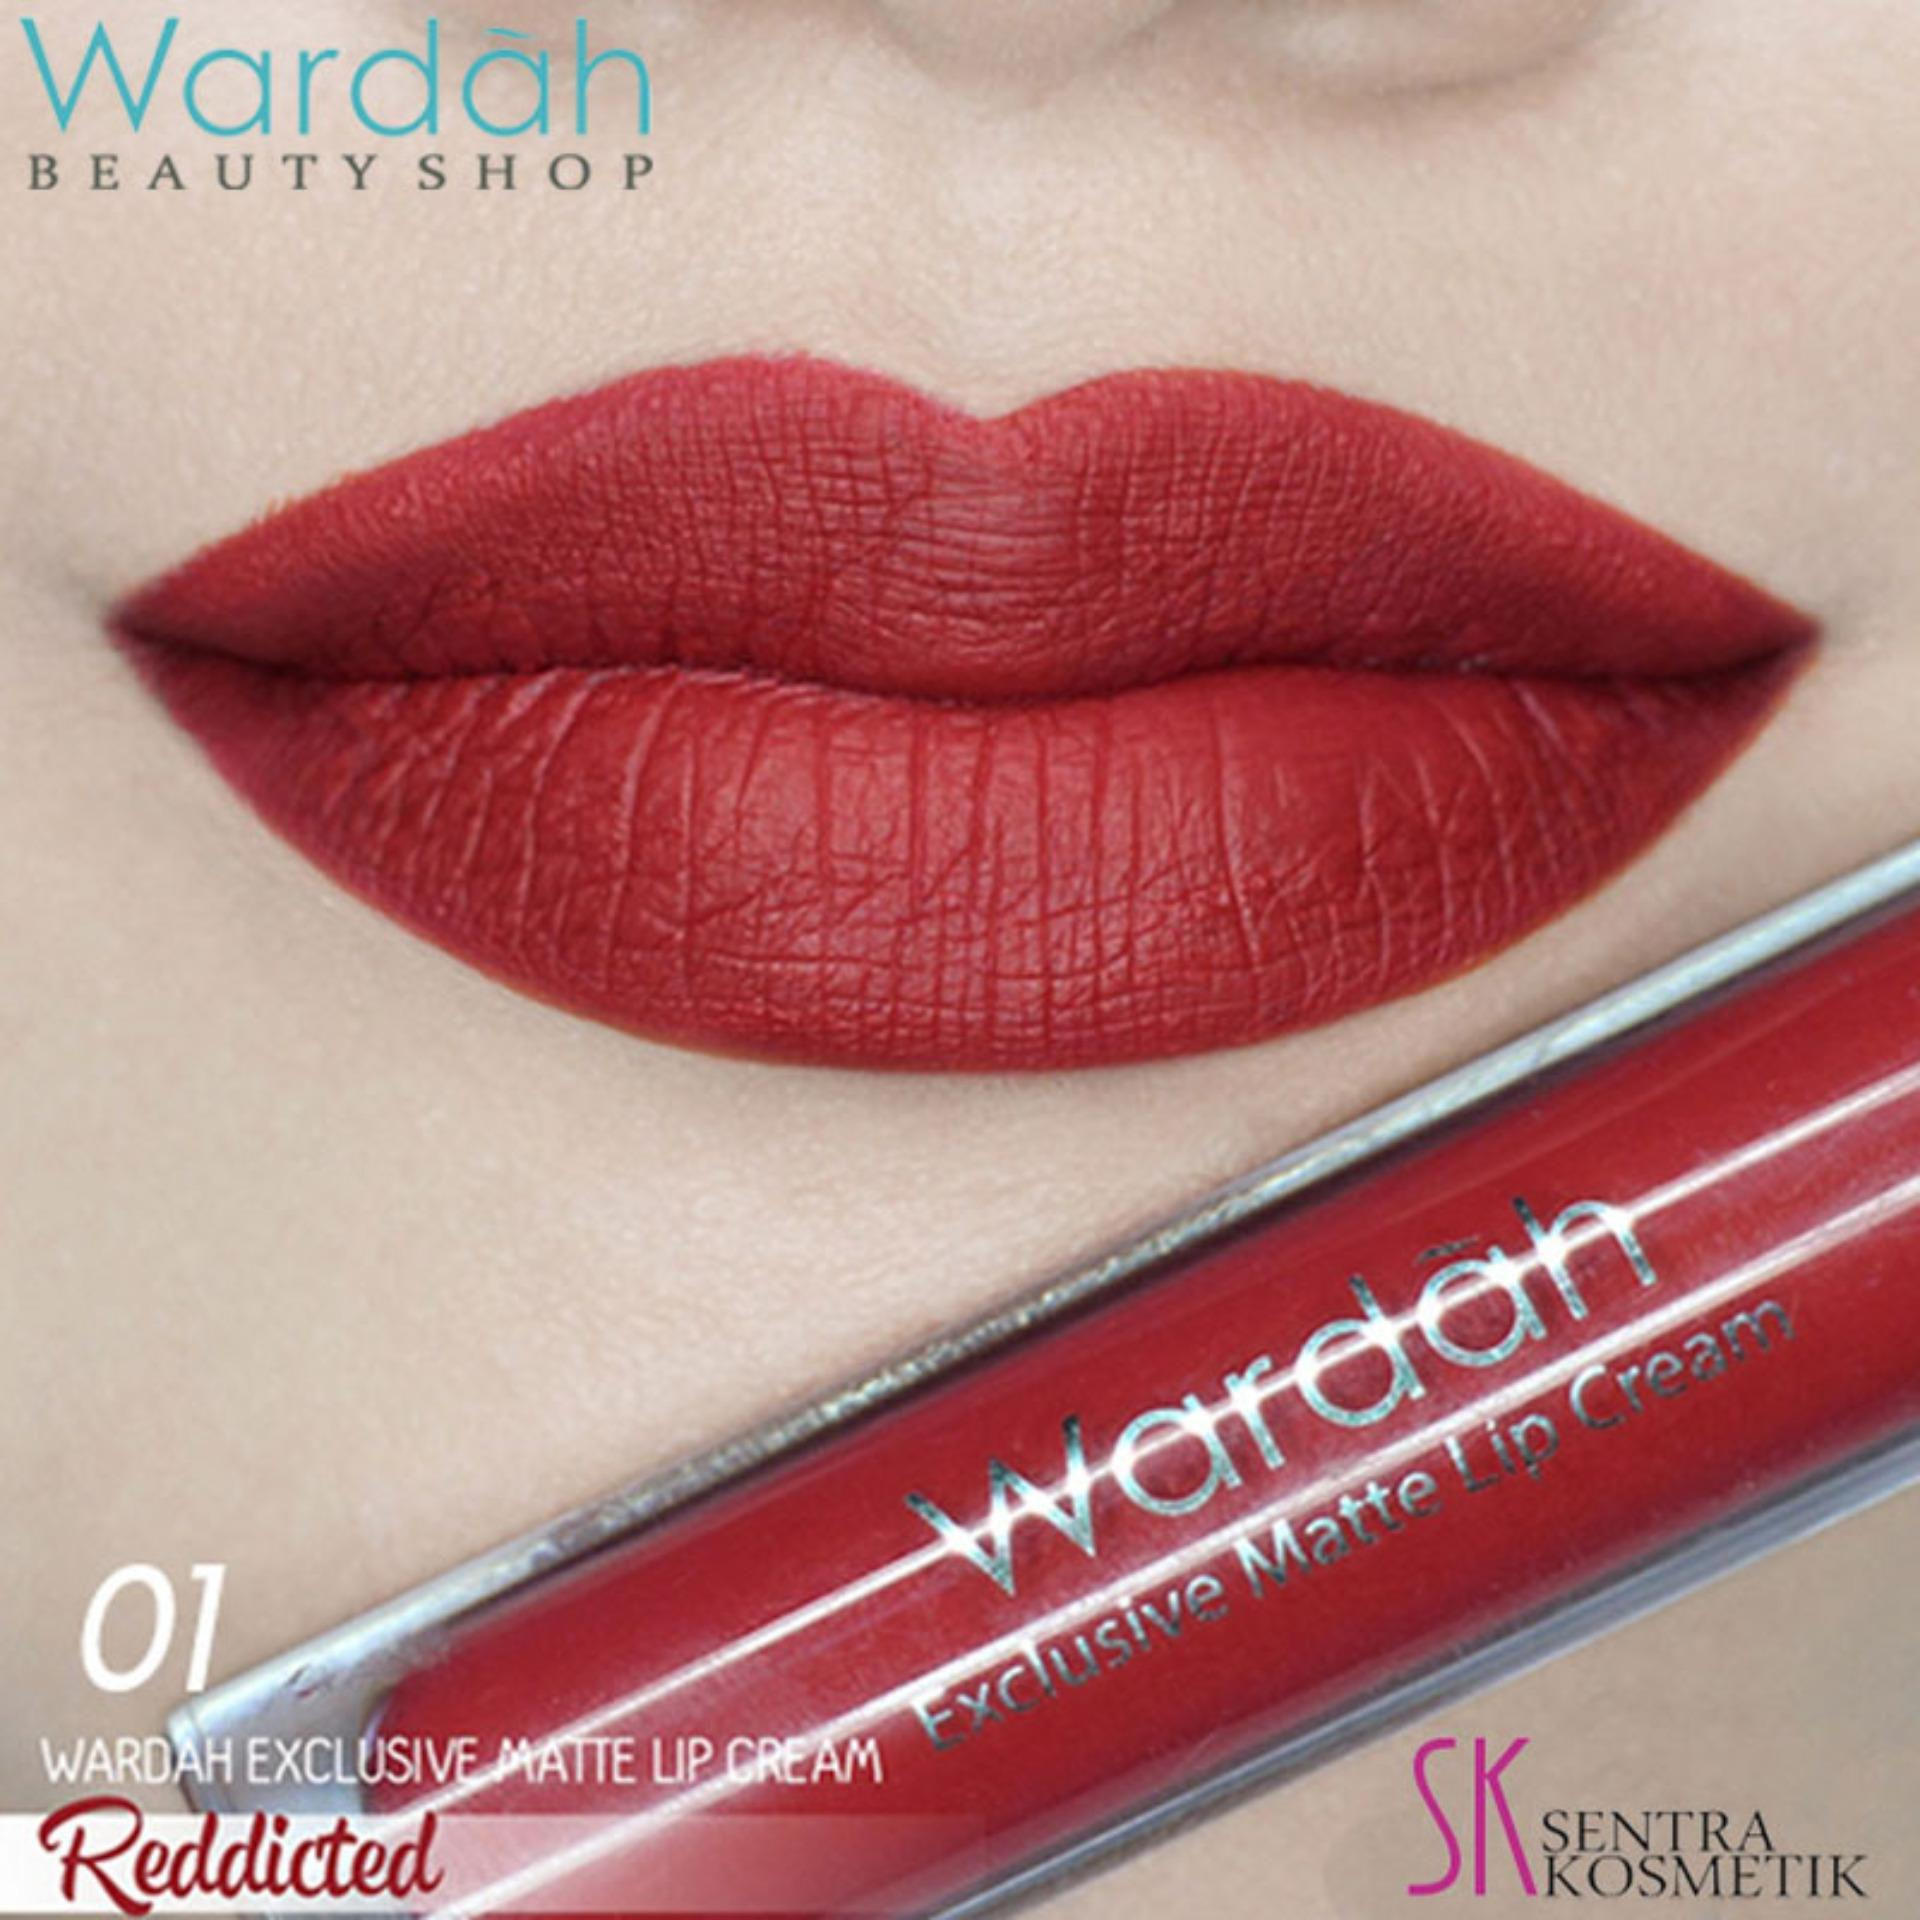 Wardah Exclusive MATTE LIP CREAM No 01 - RED DICTED